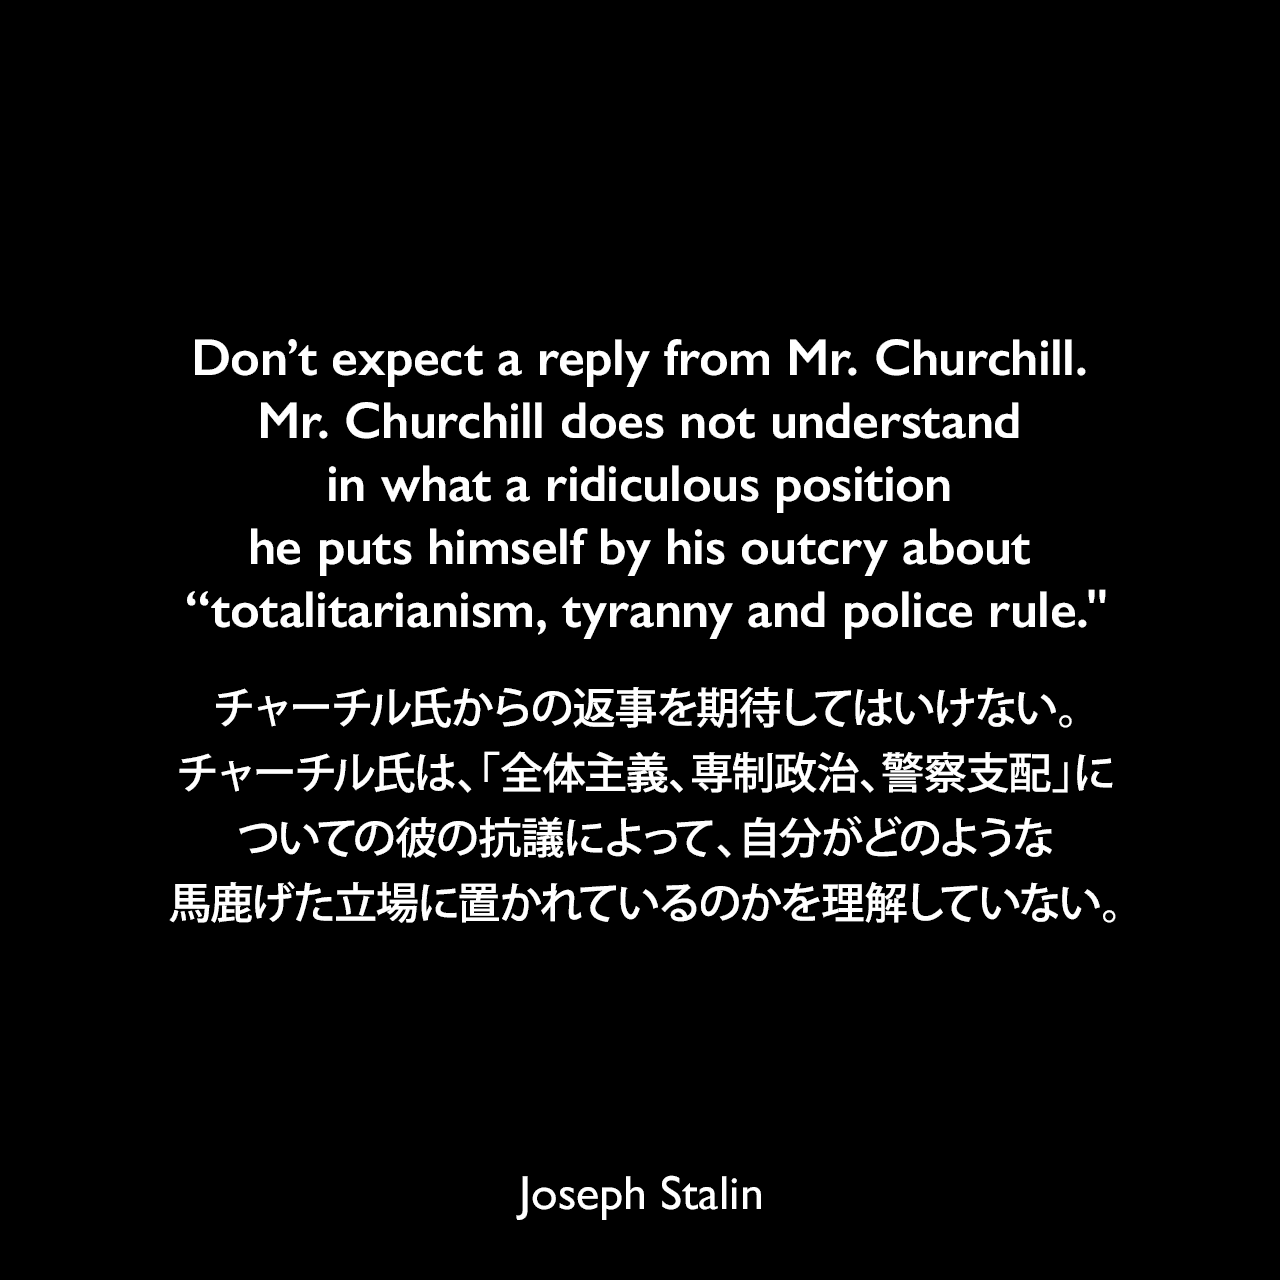 "Don't expect a reply from Mr. Churchill. Mr. Churchill does not understand in what a ridiculous position he puts himself by his outcry about ""totalitarianism, tyranny and police rule."